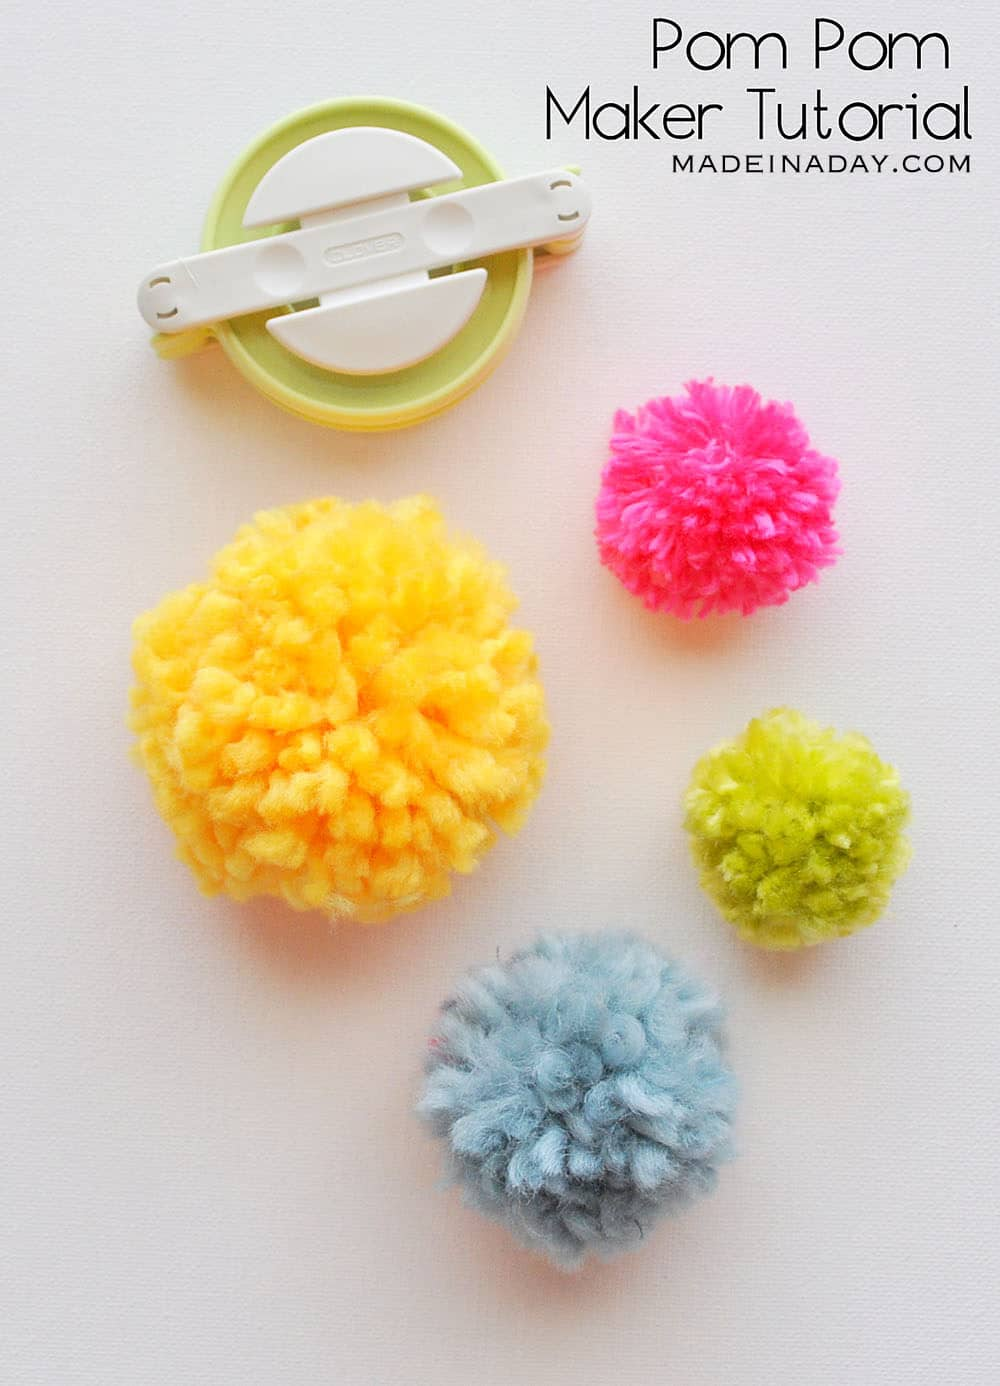 Clover pom maker tutorial